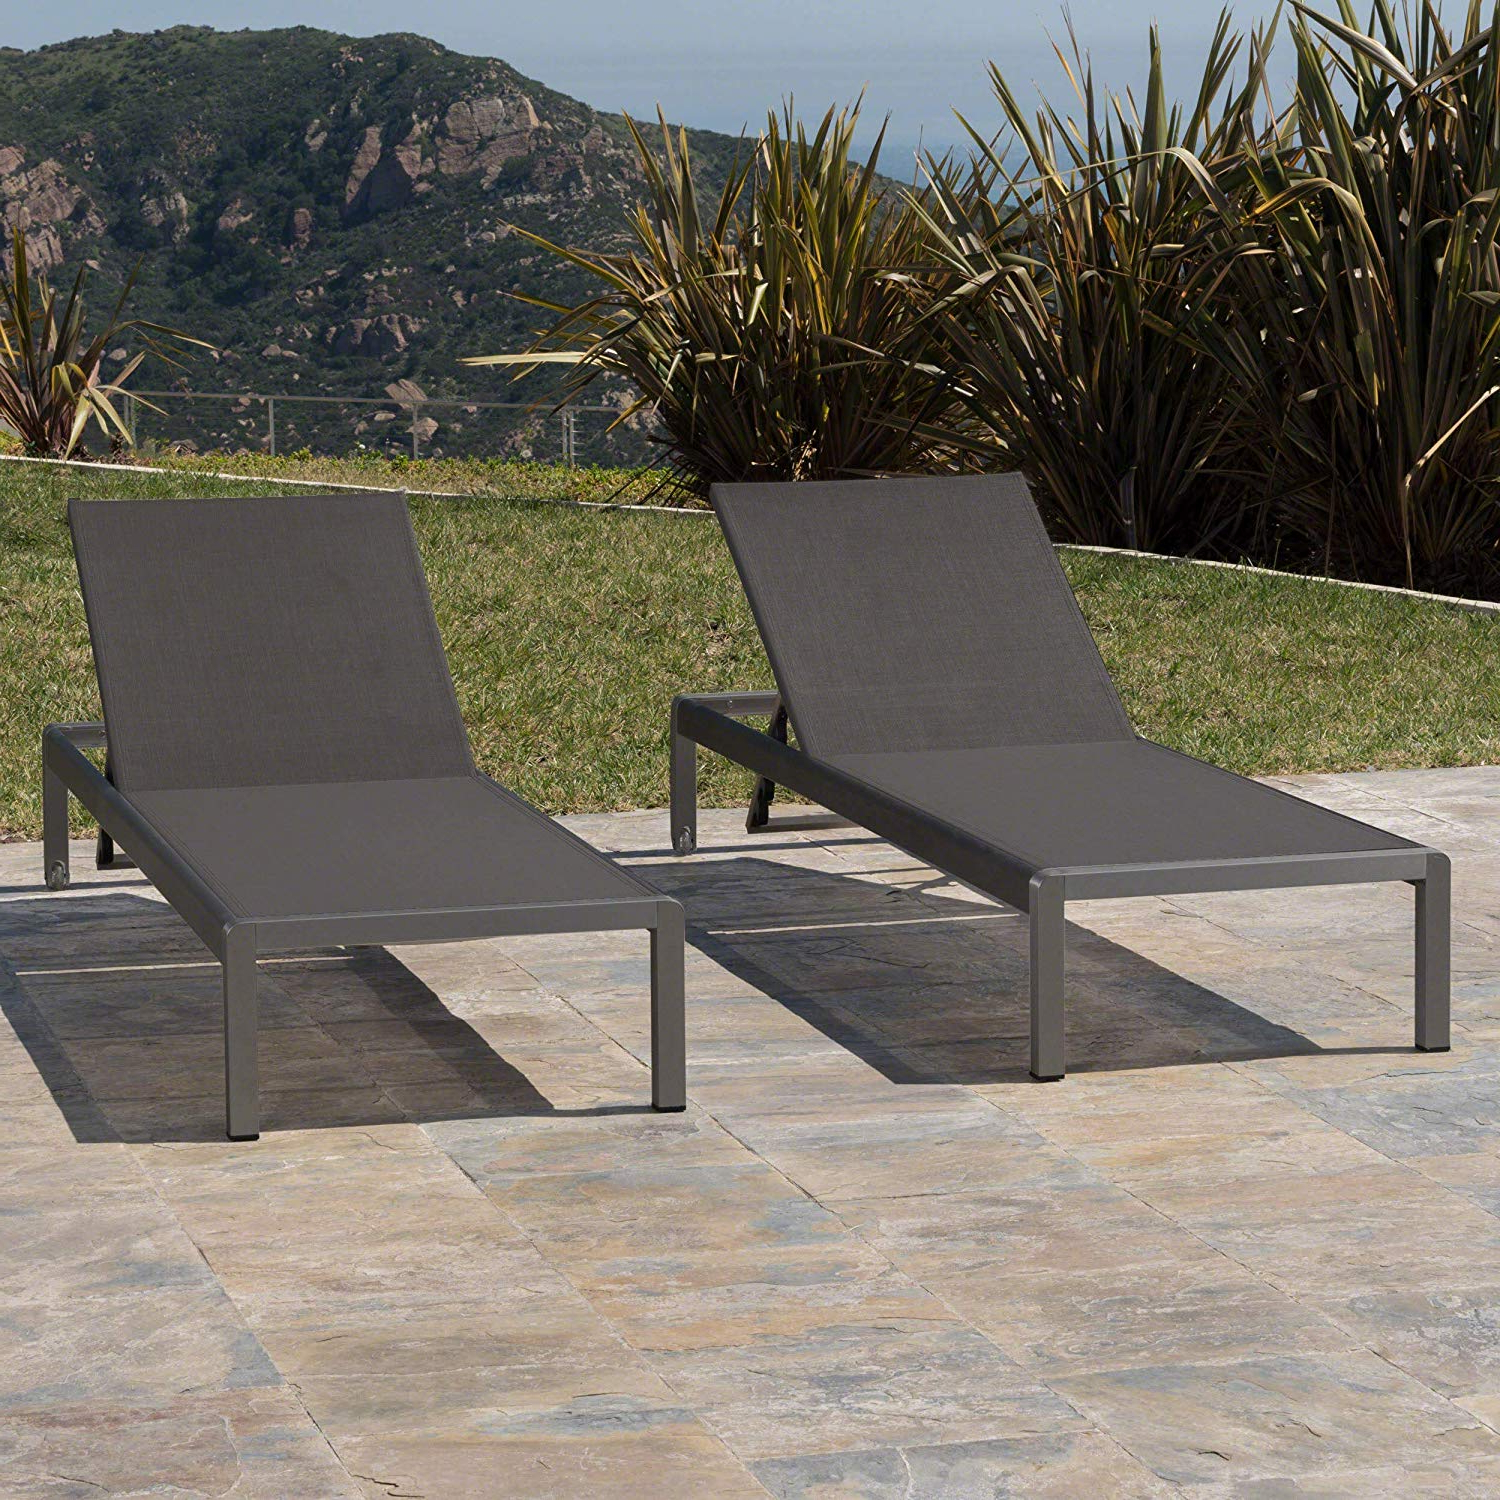 Details About Christopher Knight Home Crested Bay Patio Furniture, Outdoor Grey Aluminum With Pertaining To 2019 Myers Outdoor Aluminum Mesh Chaise Lounges (View 19 of 25)